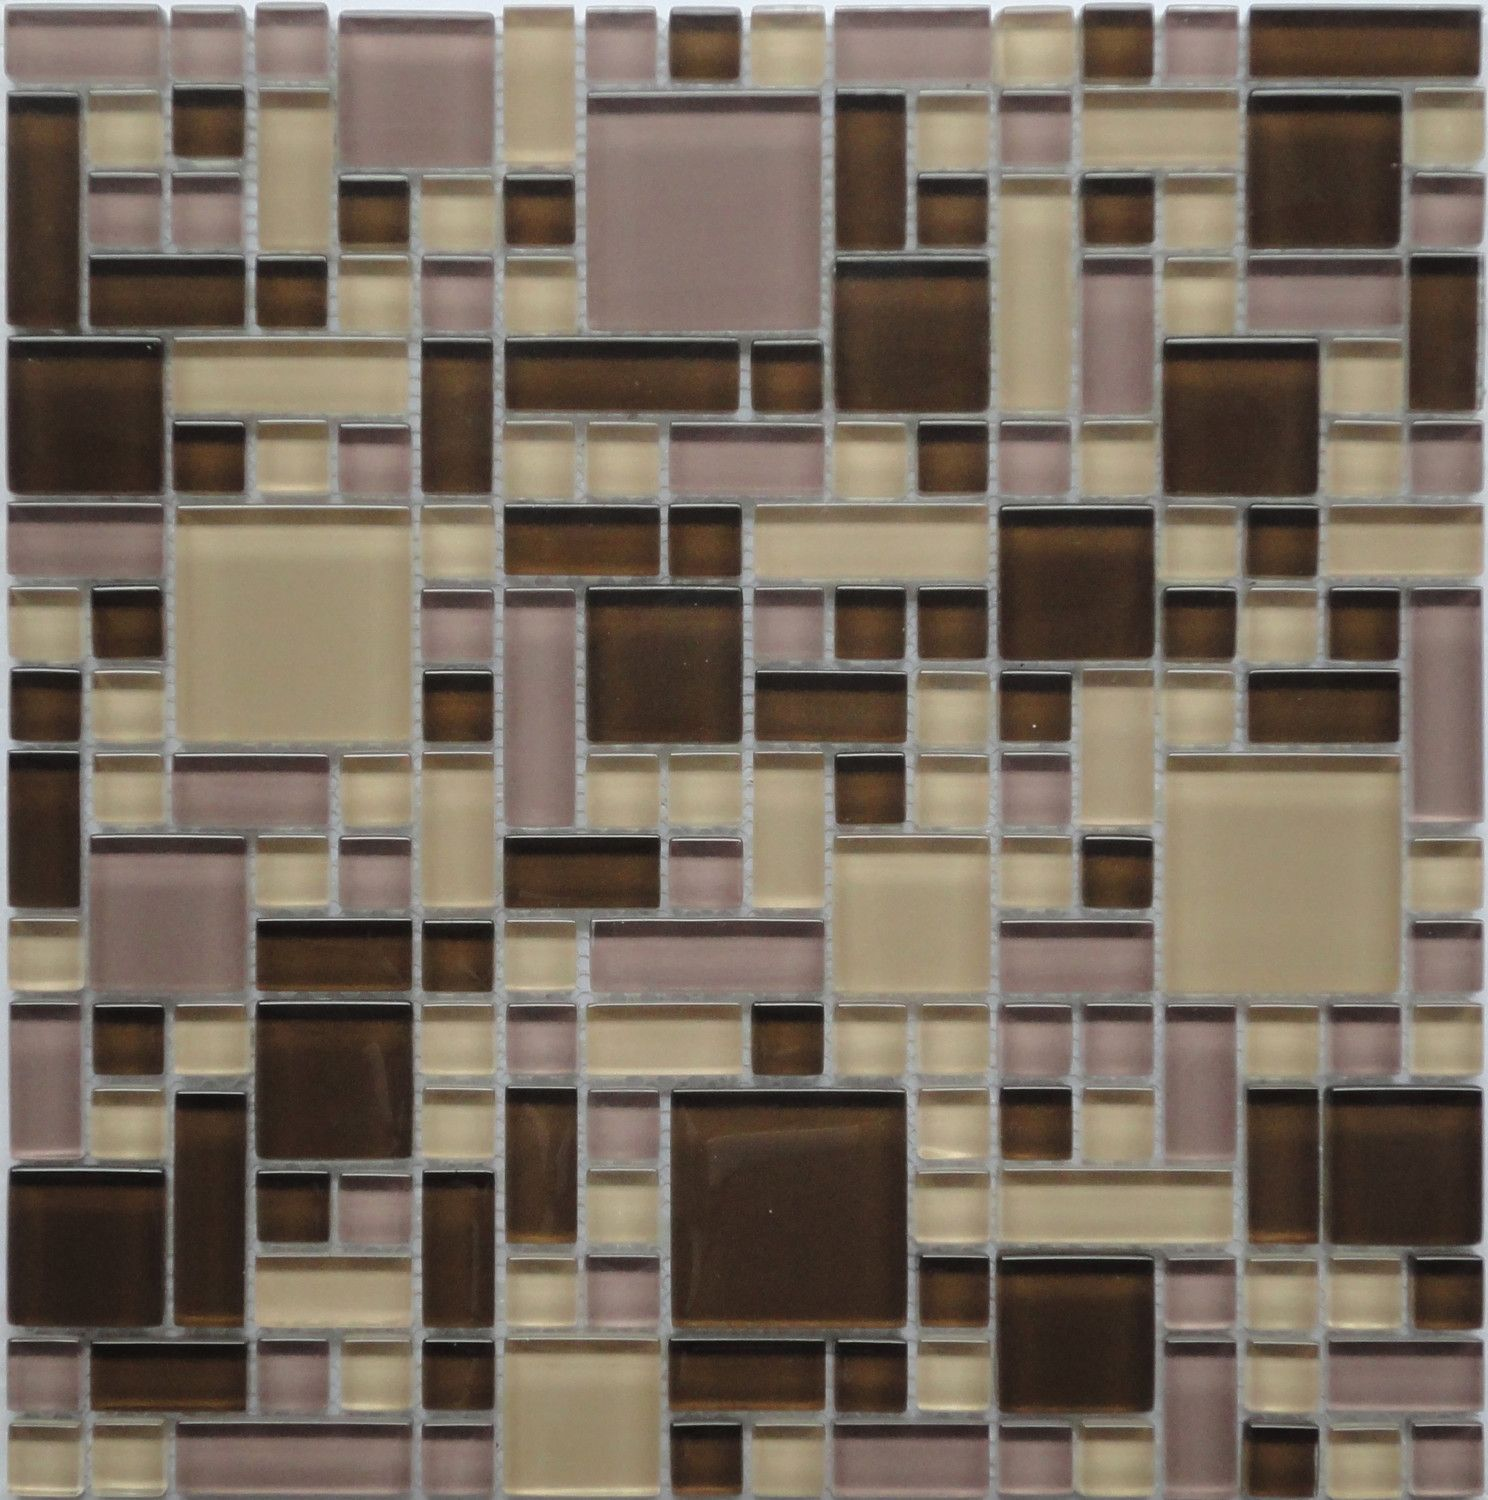 cassava root gp03 purple kitchen backsplash glass mosaic tile